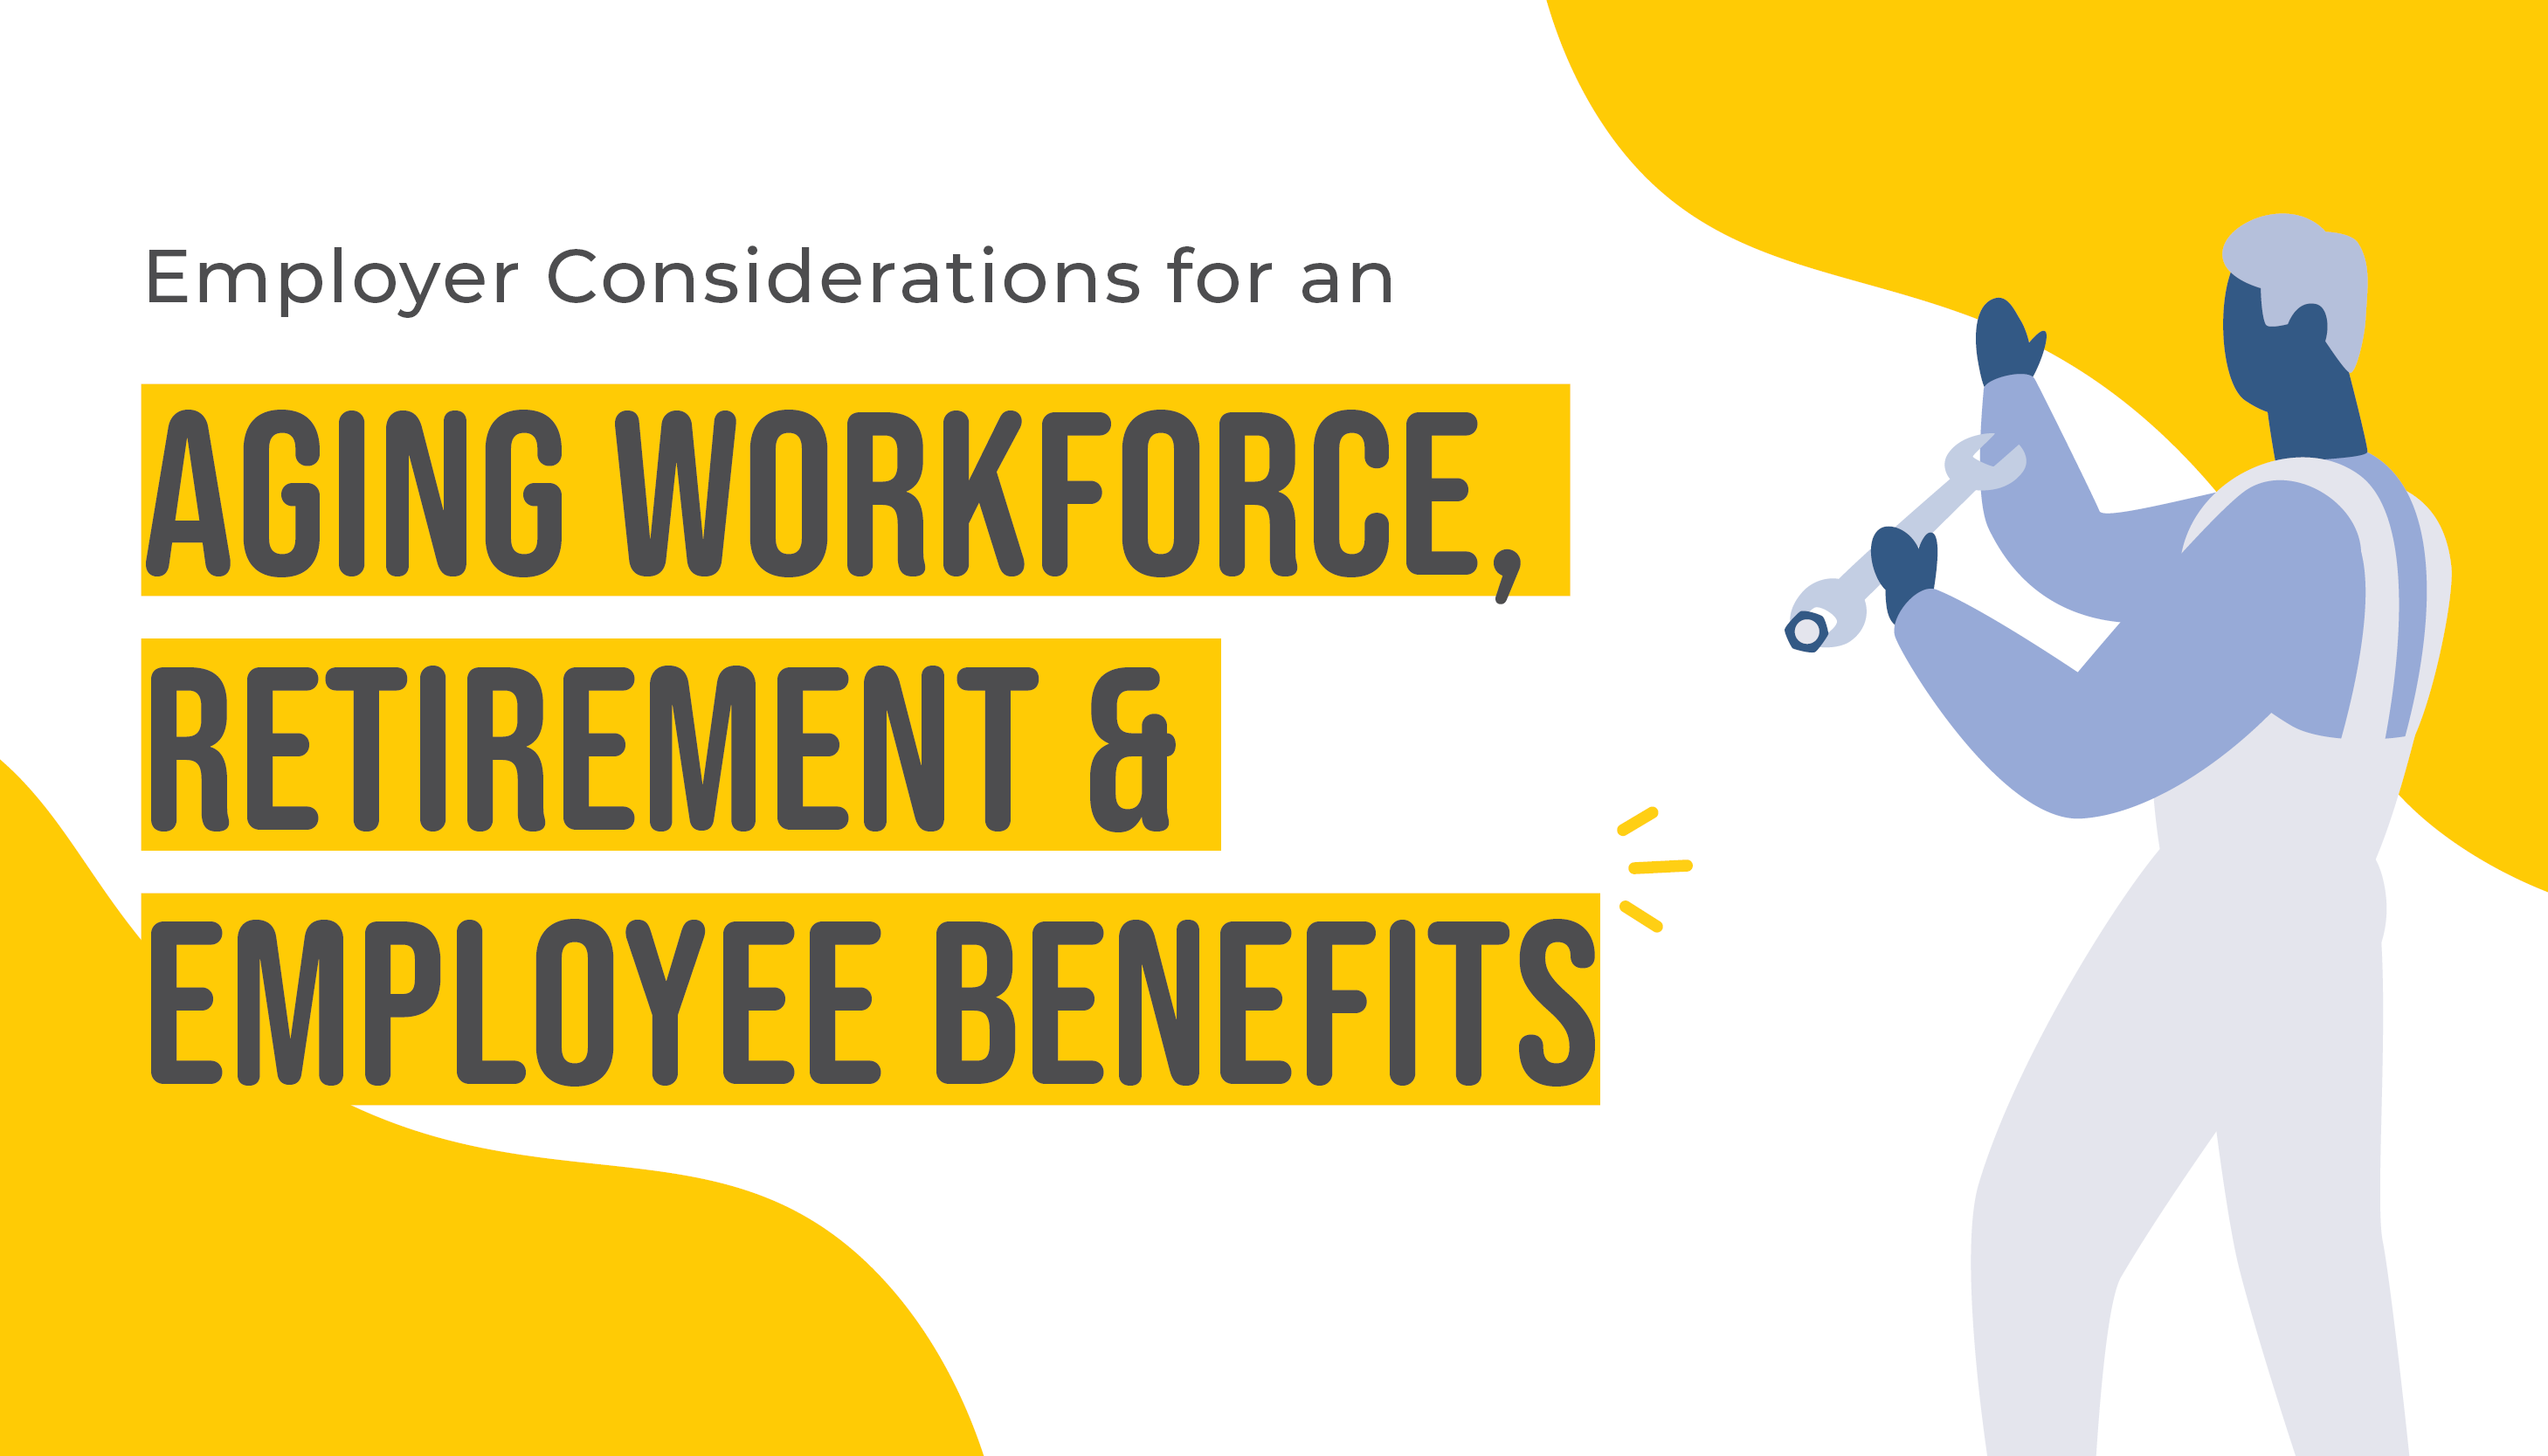 Employer Considerations for an Aging Workforce, Retirement, & Employee Benefits | Benefits by Design